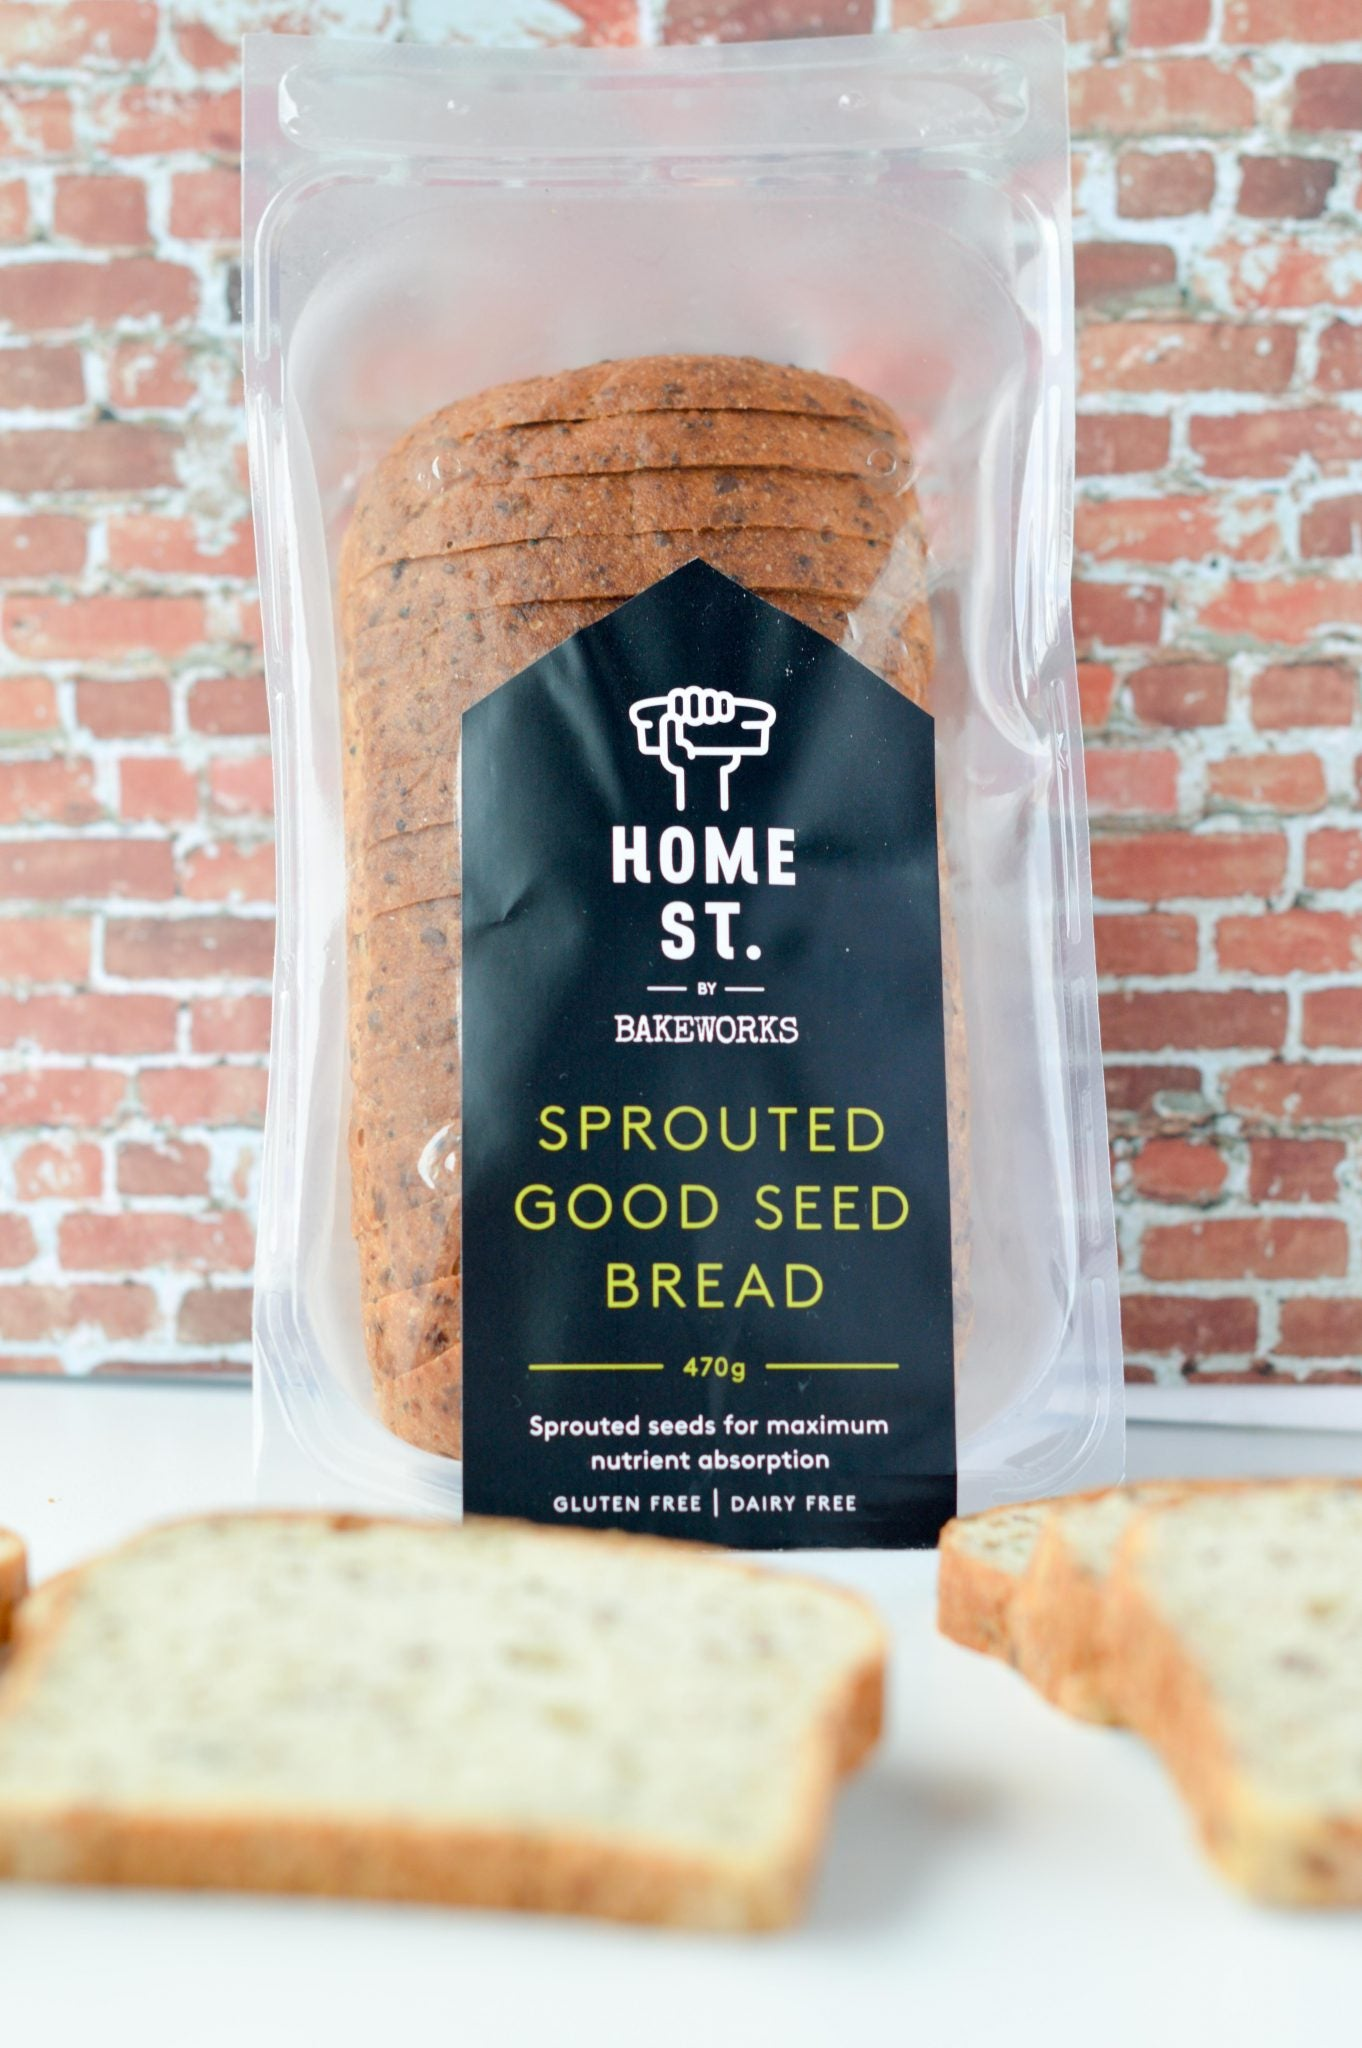 Home St Sprouted Good Seed Bread